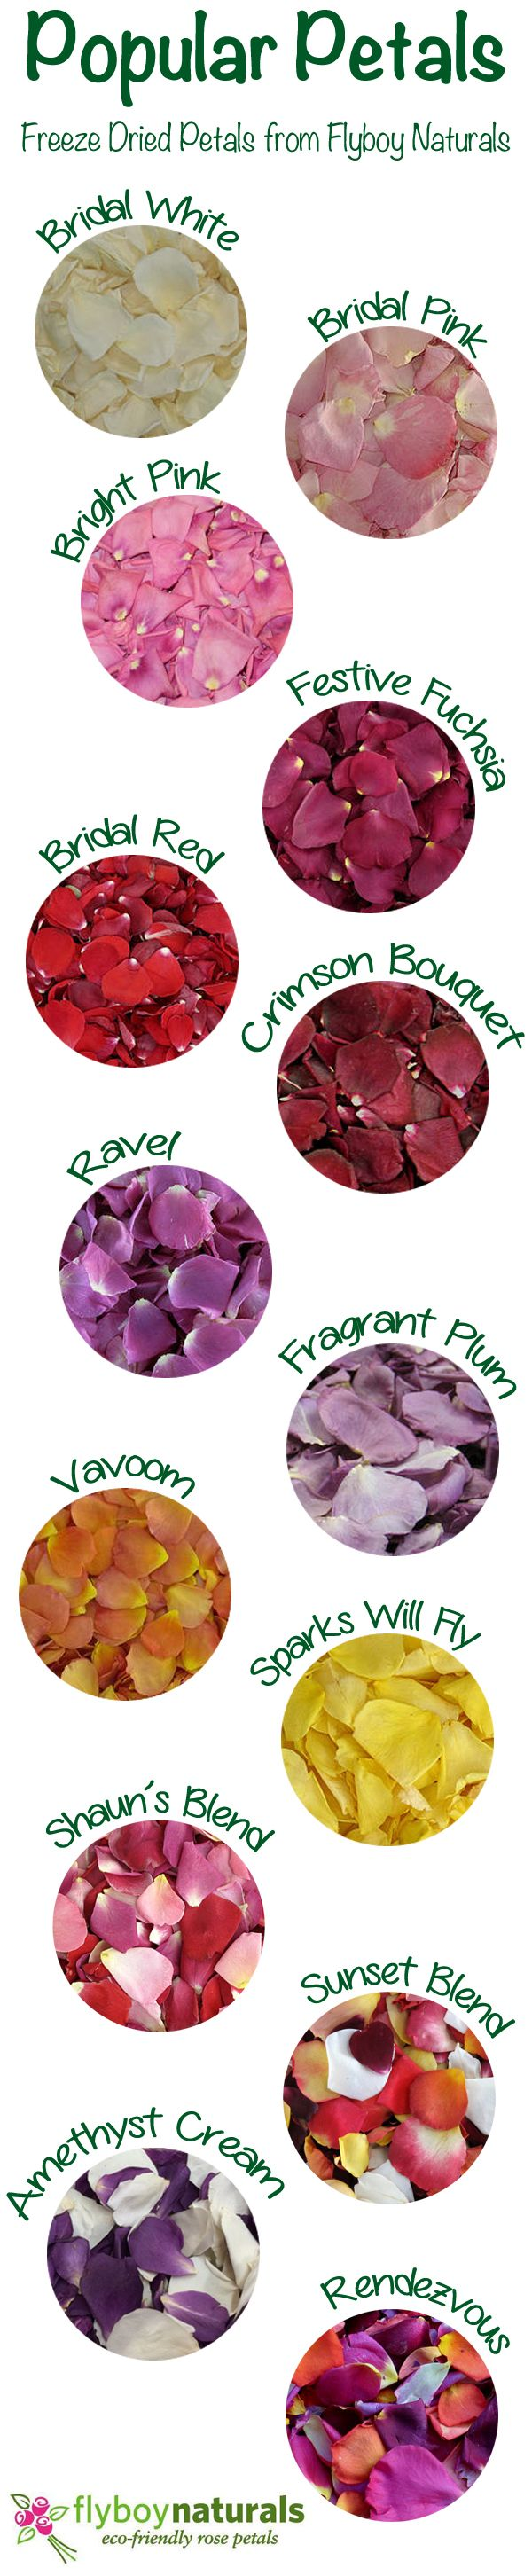 A few of our favorites rose petals for weddings & special events. Over 100 colors of petals to choose from at Flyboy Naturals. Take a peek at all the options click this link: http://flyboynaturals.com/our-products/ or visit www.flyboynaturals.com for idea